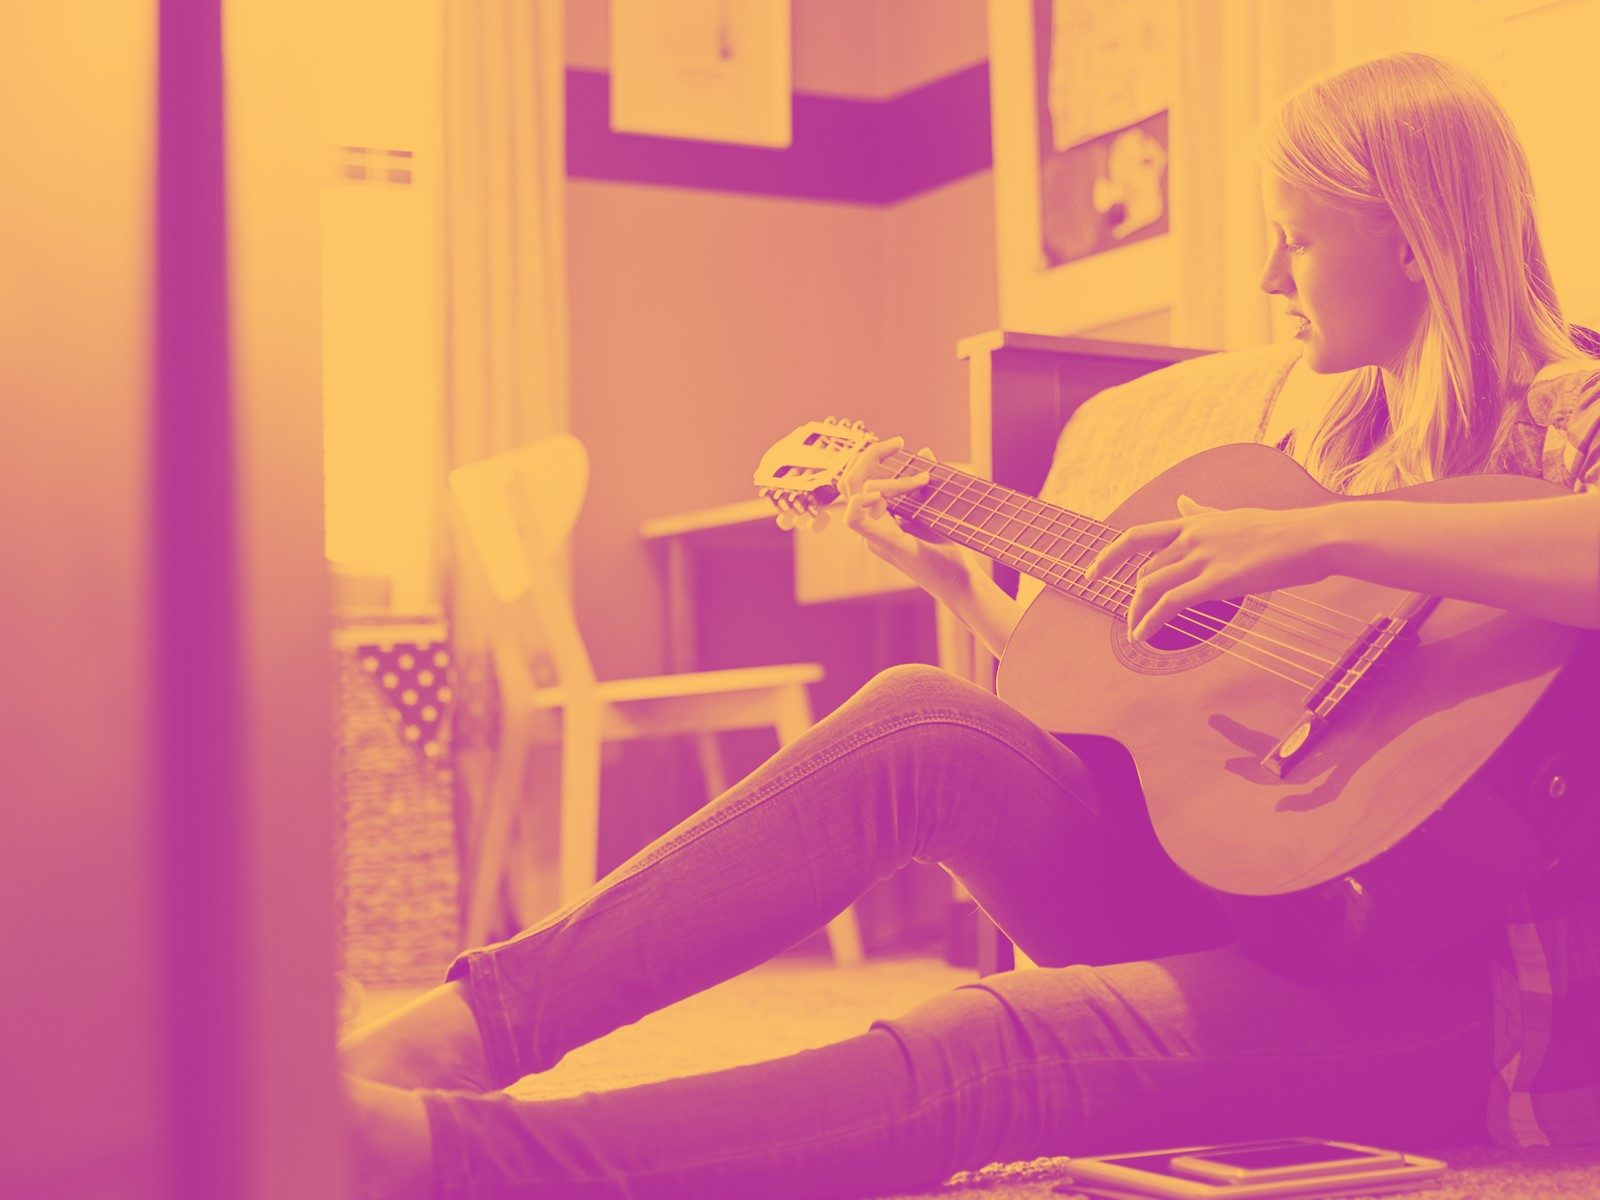 Girl playing guitar sitting on bedroom floor